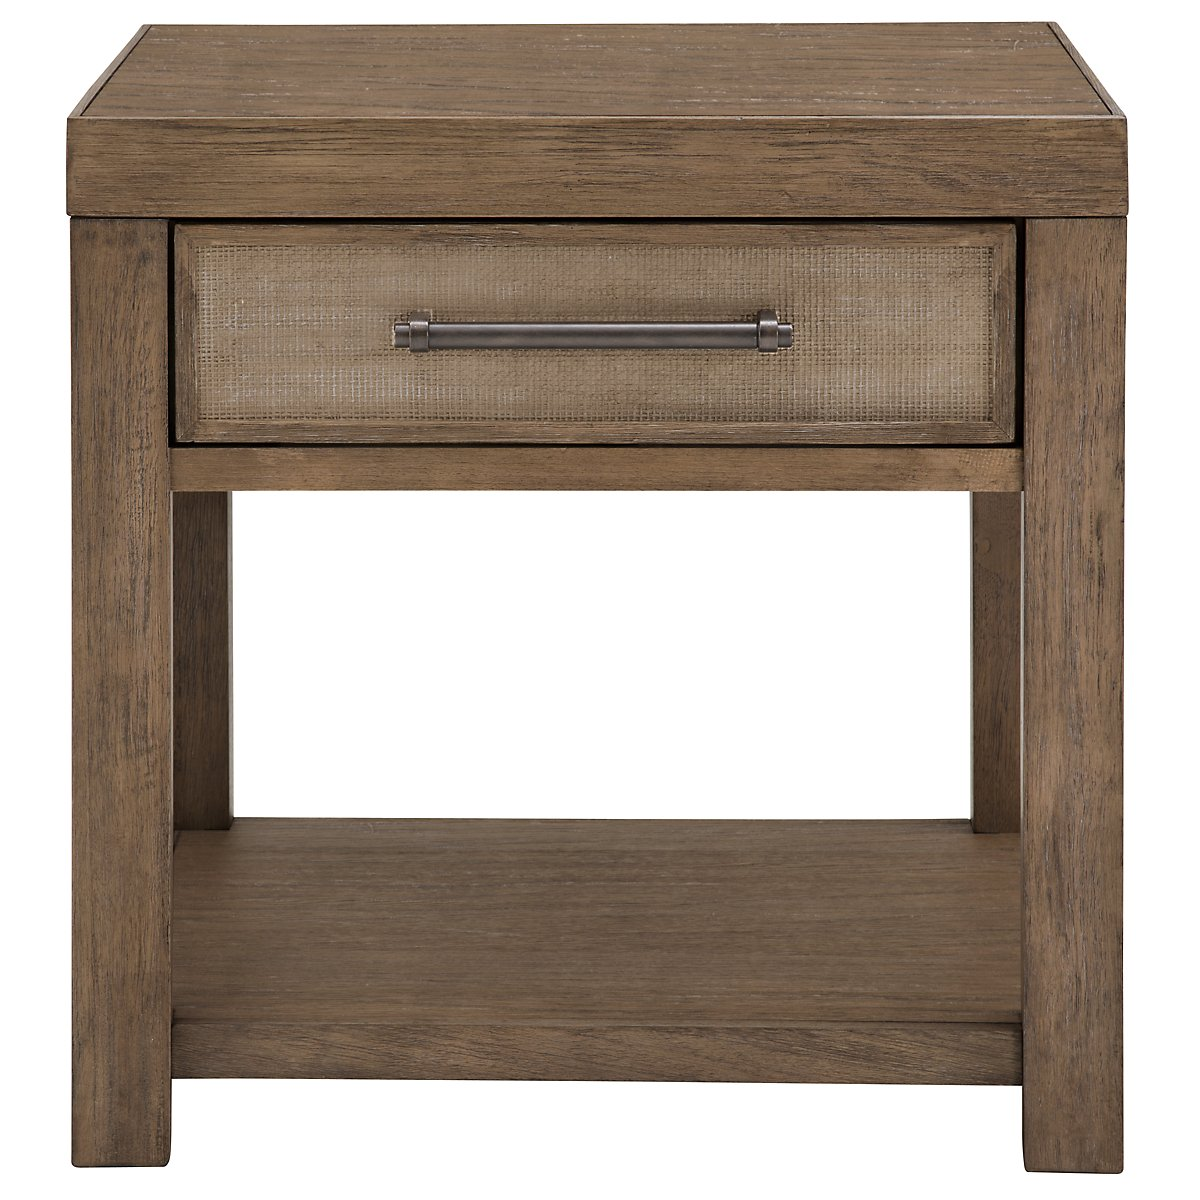 Mirabelle Light Tone End Table